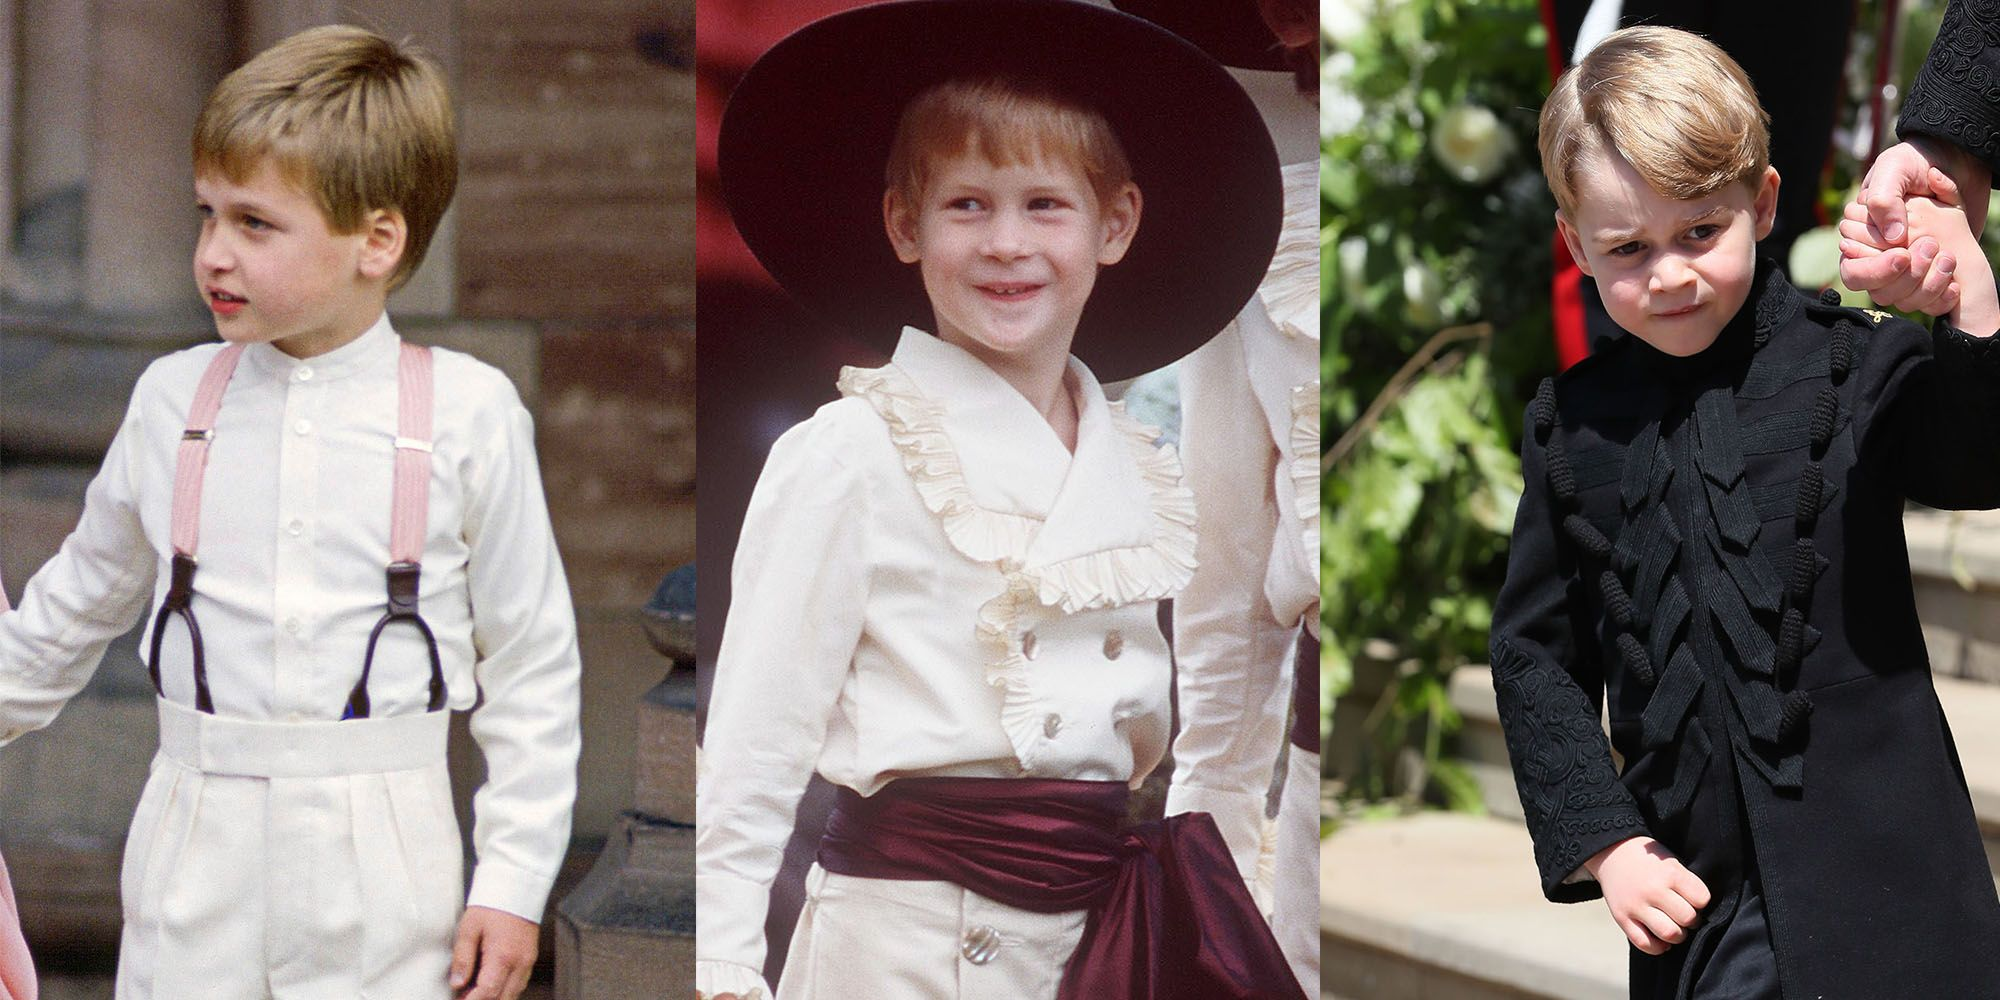 pictures Prince George Looks Exactly Like A Young WilliamHarry At Royal Wedding